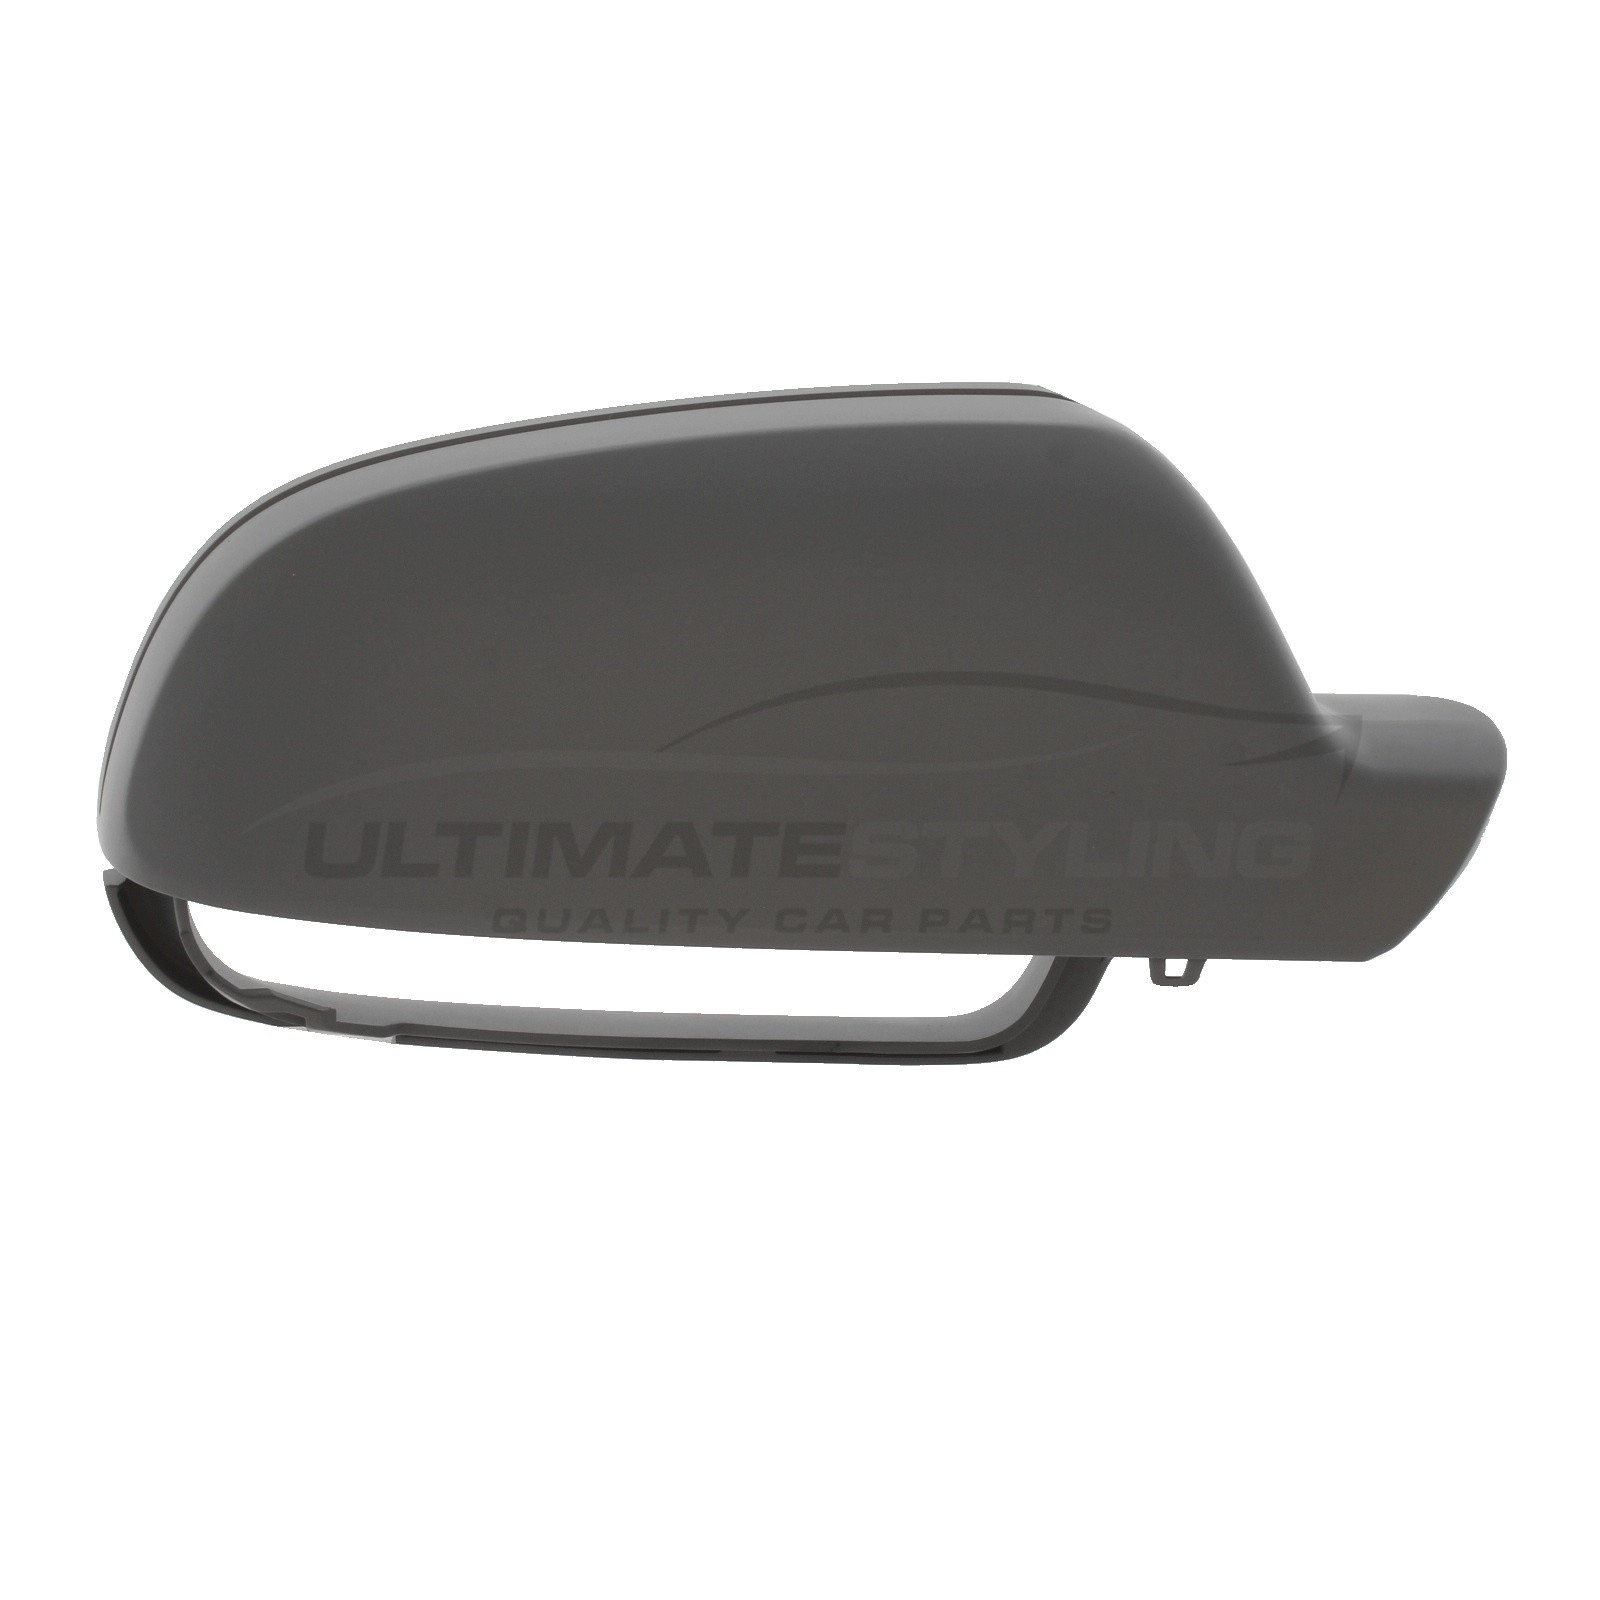 Audi A3 2010-2013, A4 2010-2016, A5 2009-2017, A6 2010-2011 Primed Door Wing Mirror Cover Casing Cap RH